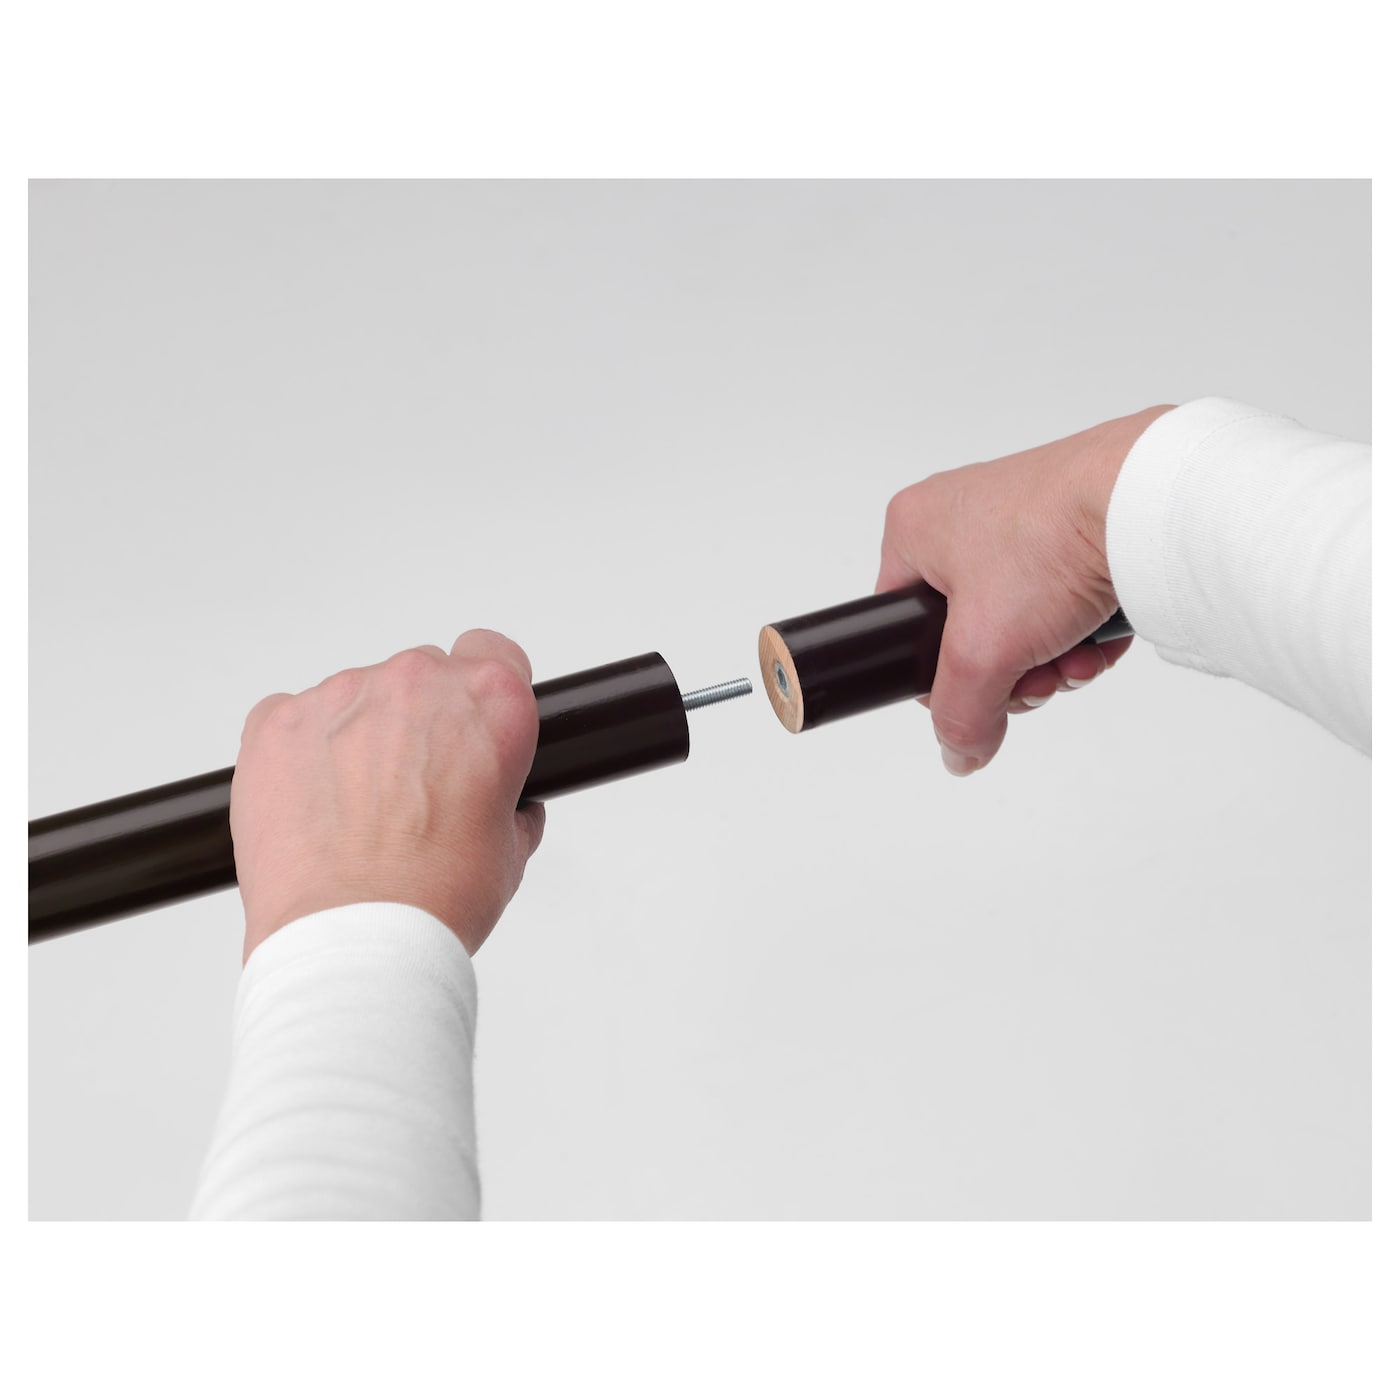 ikea portion curtain rod set can be cut to the desired length with a hacksaw